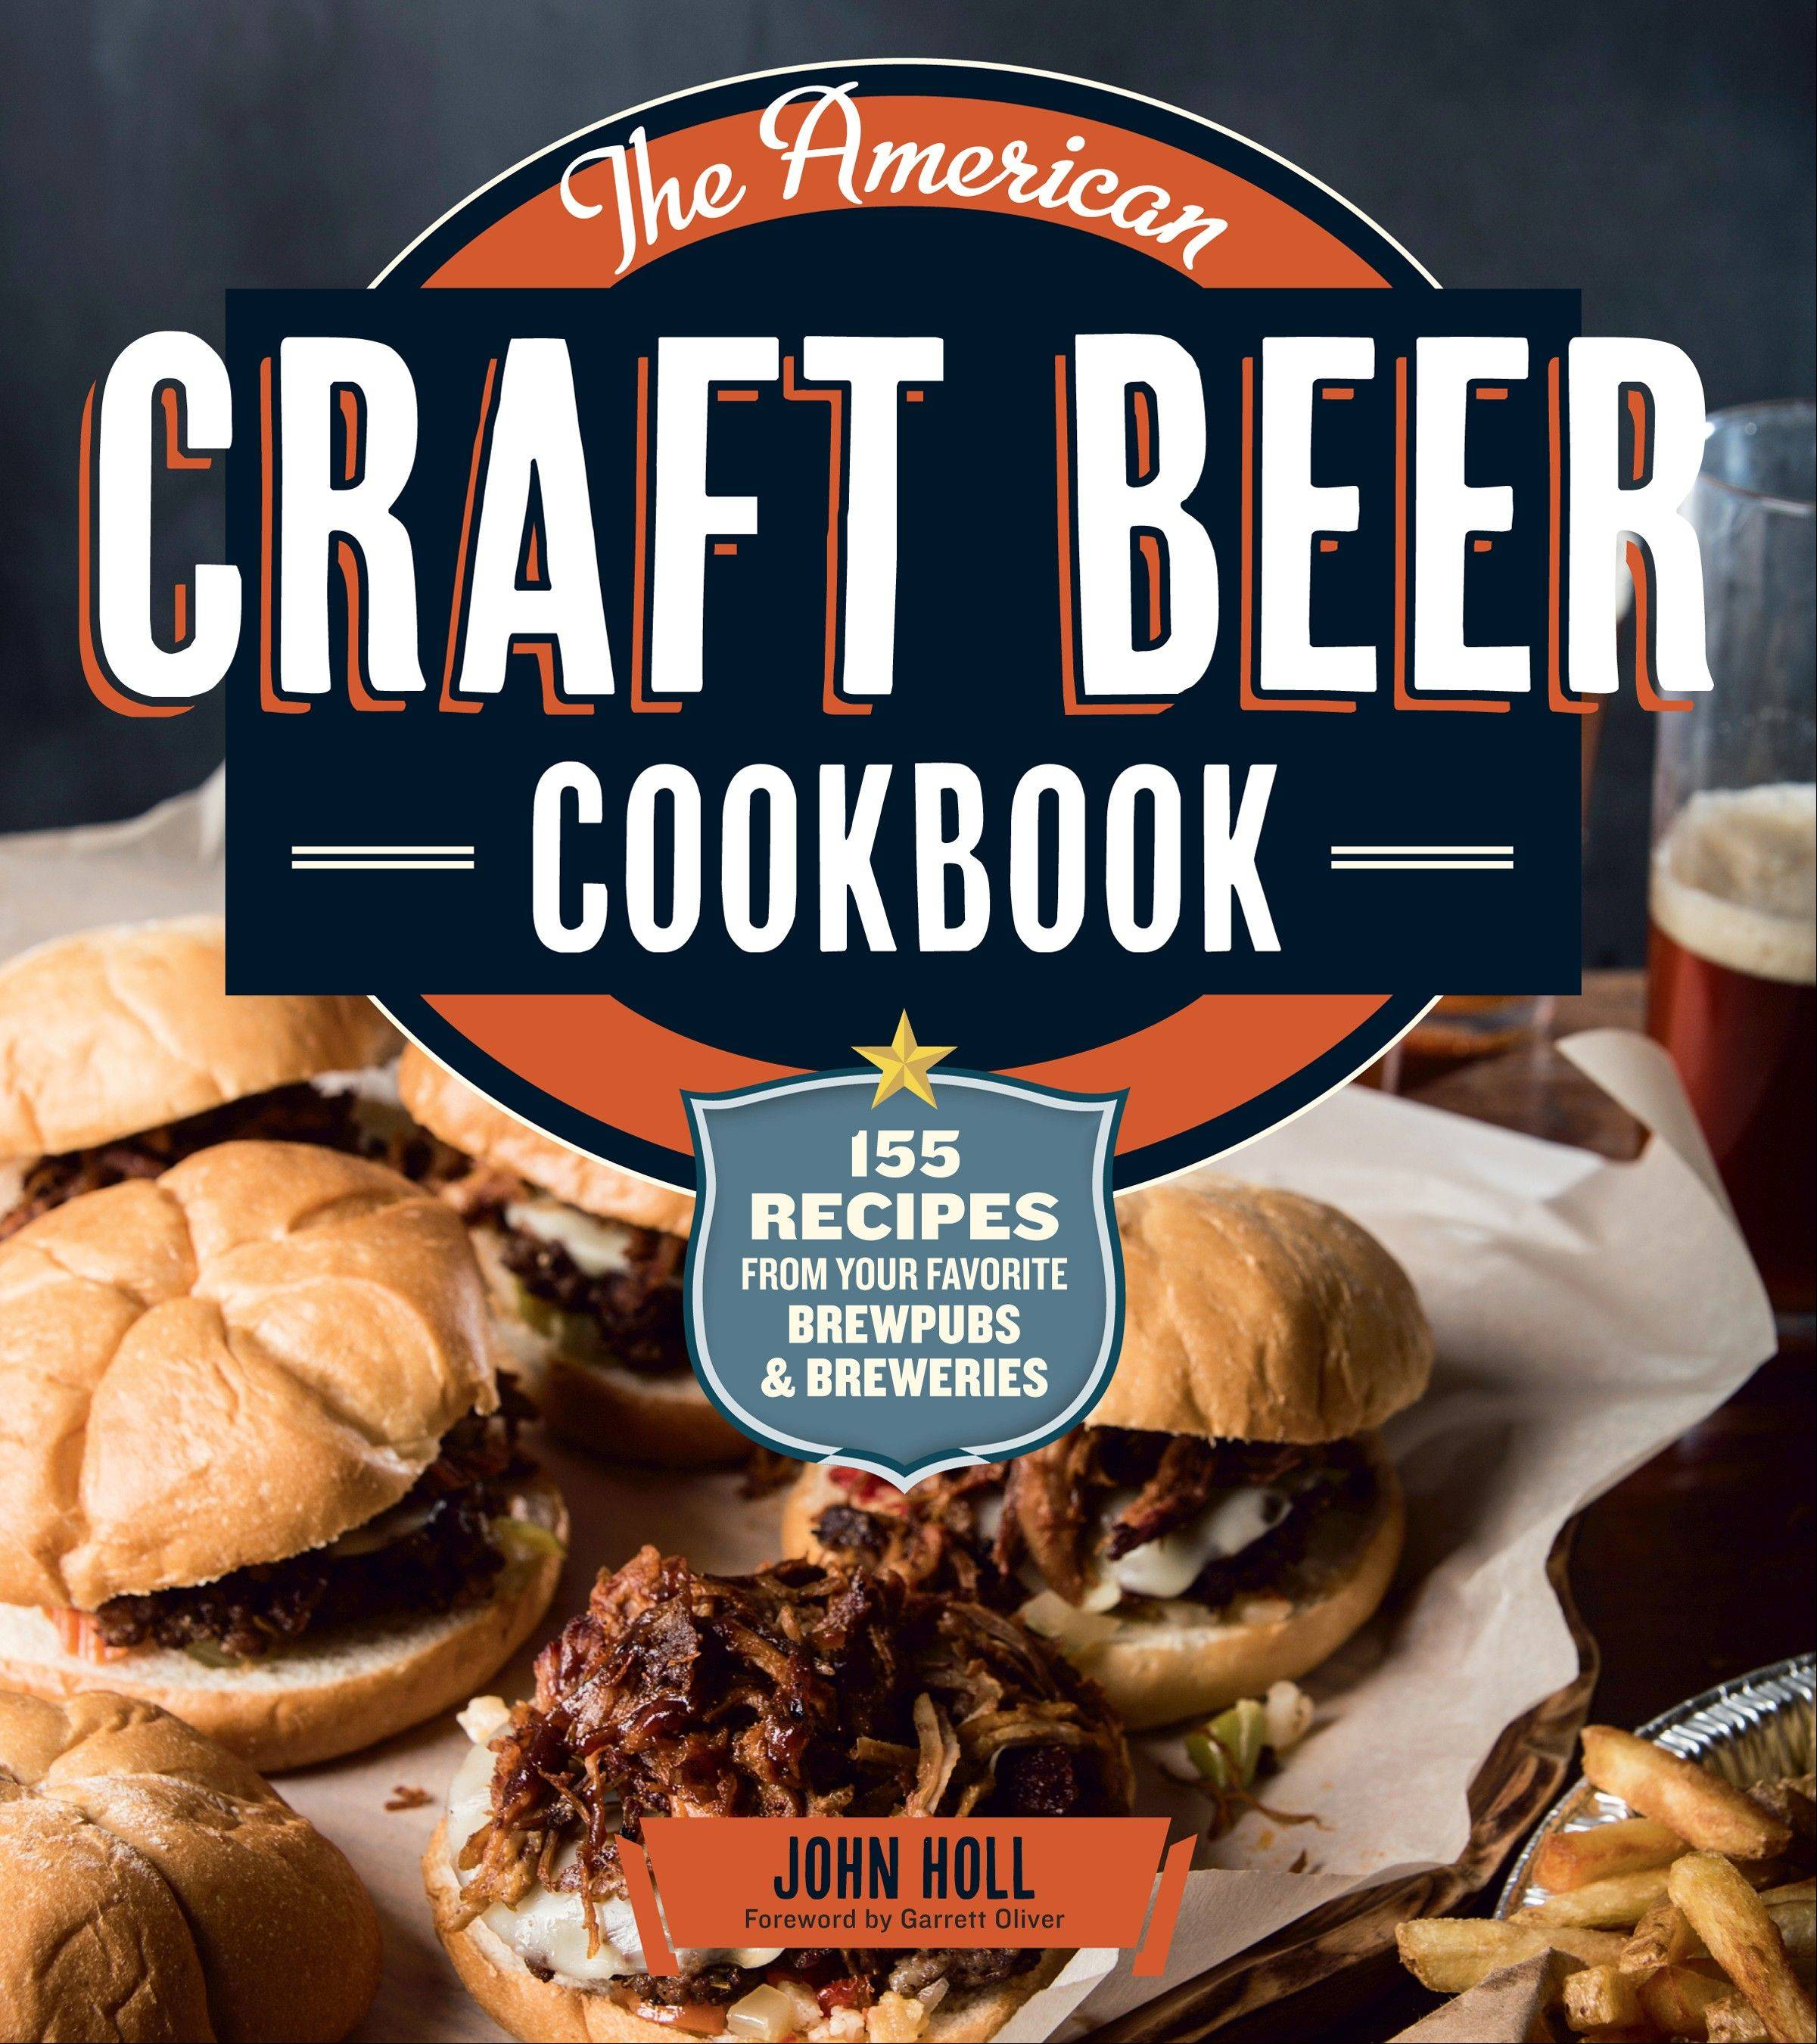 """The American Craft Beer Cookbook"" by John Holl (2013 Storey)"